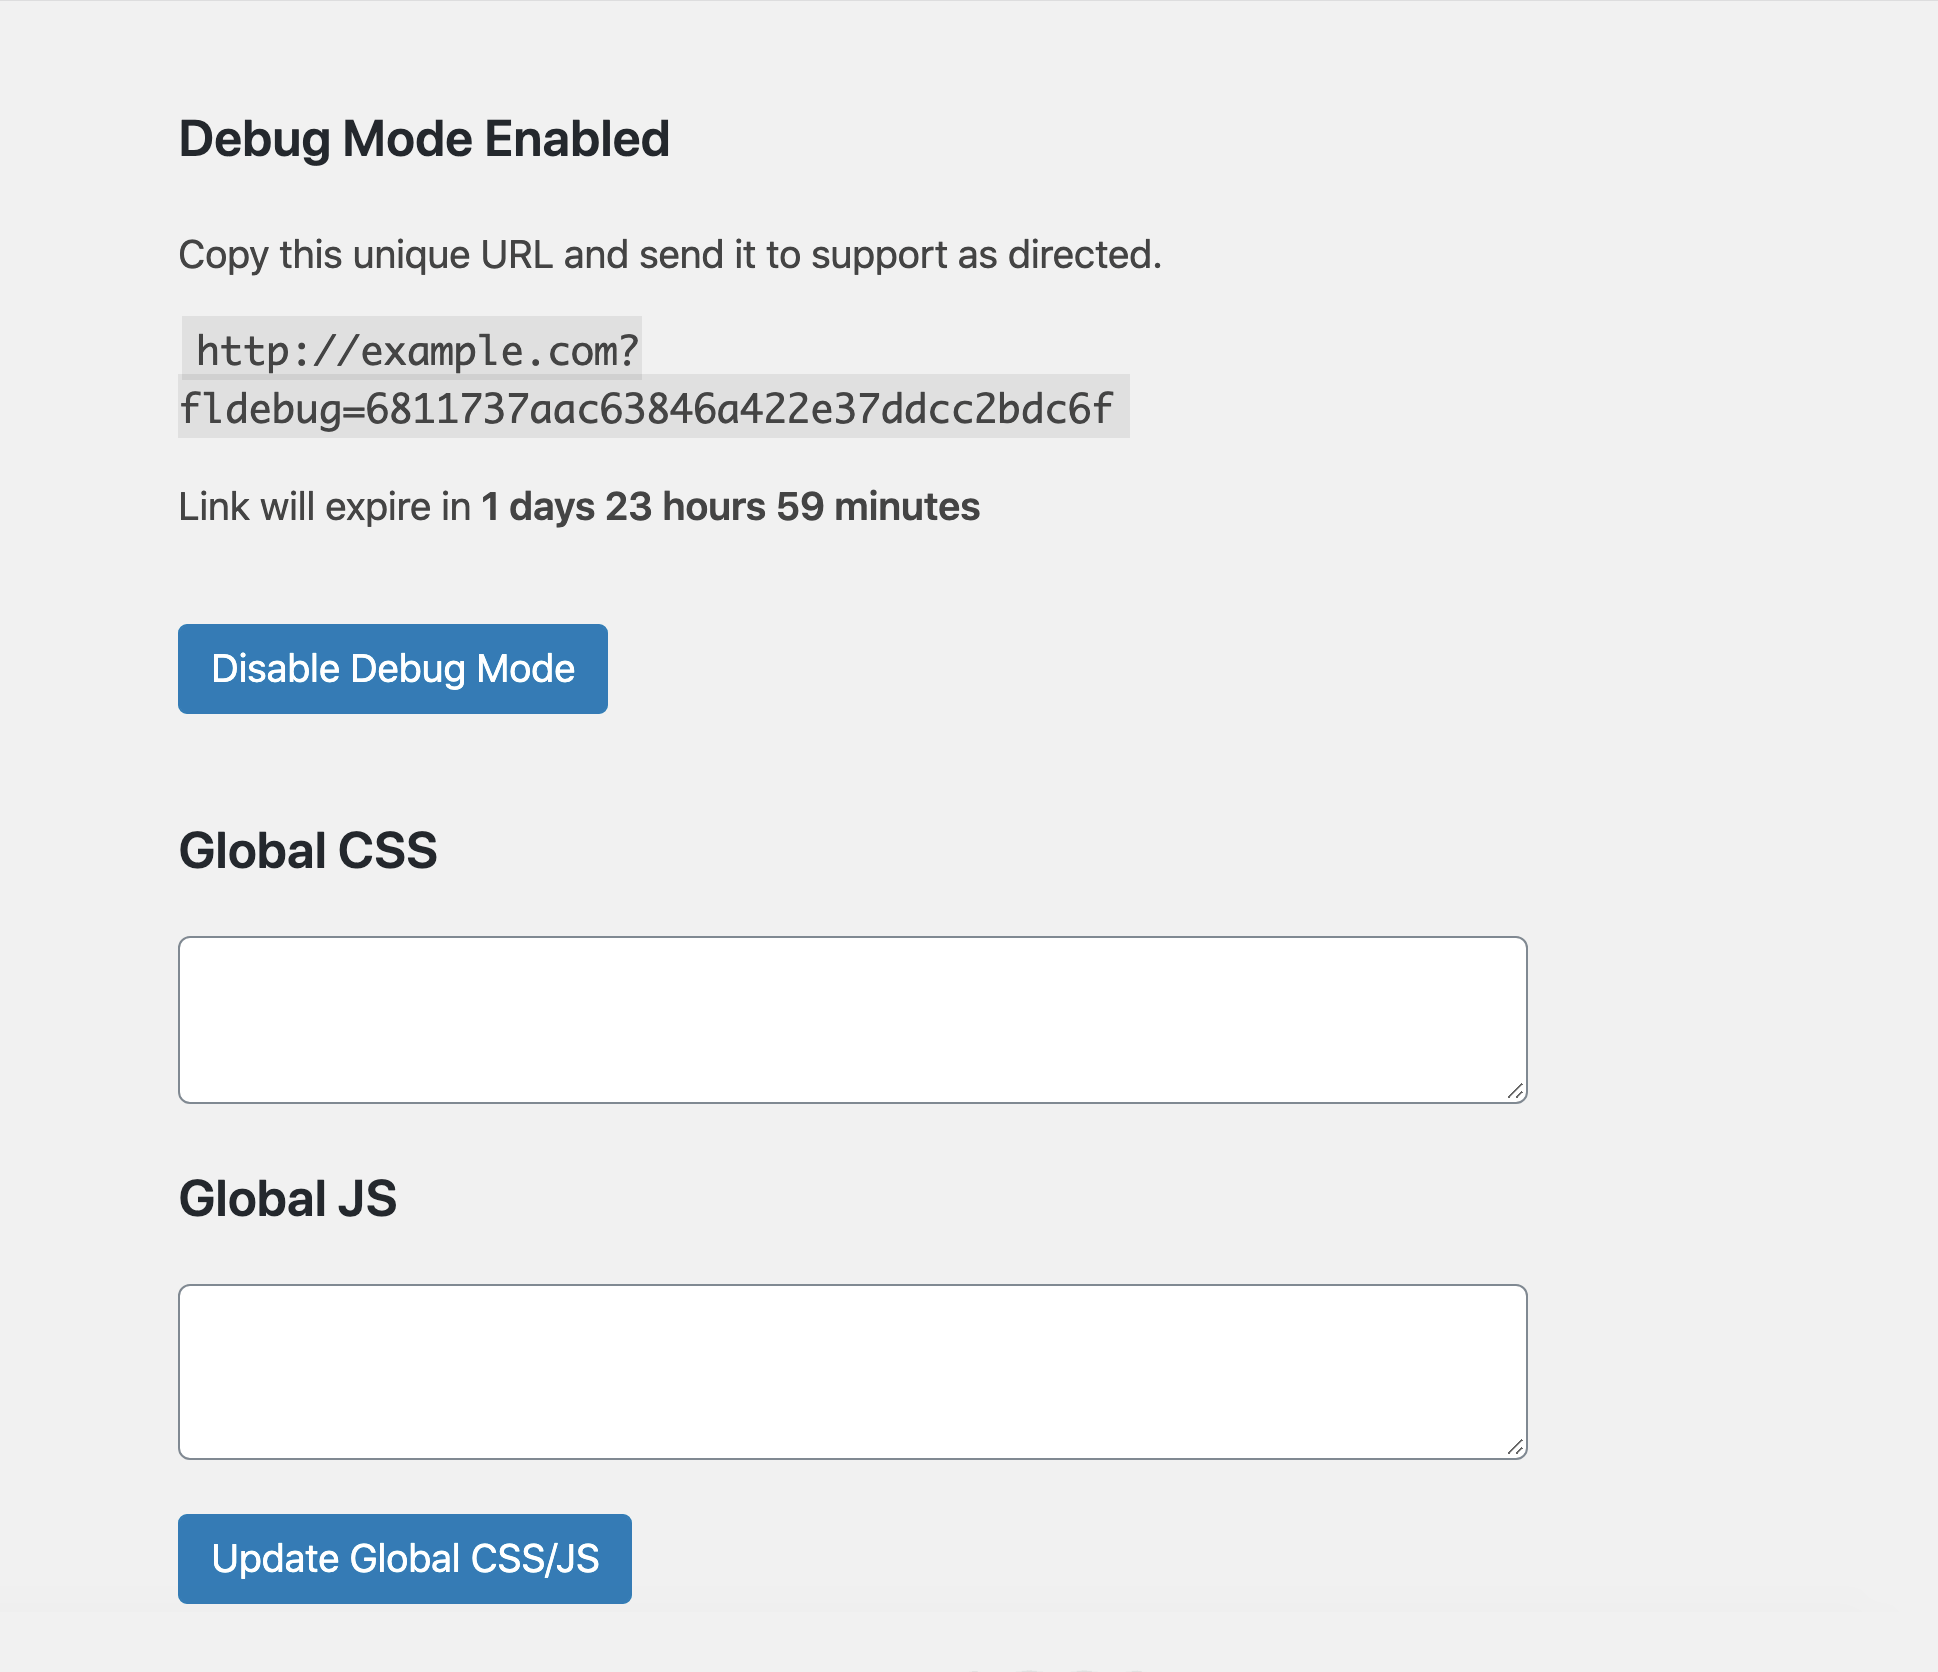 Debug Mode Global CSS/JS